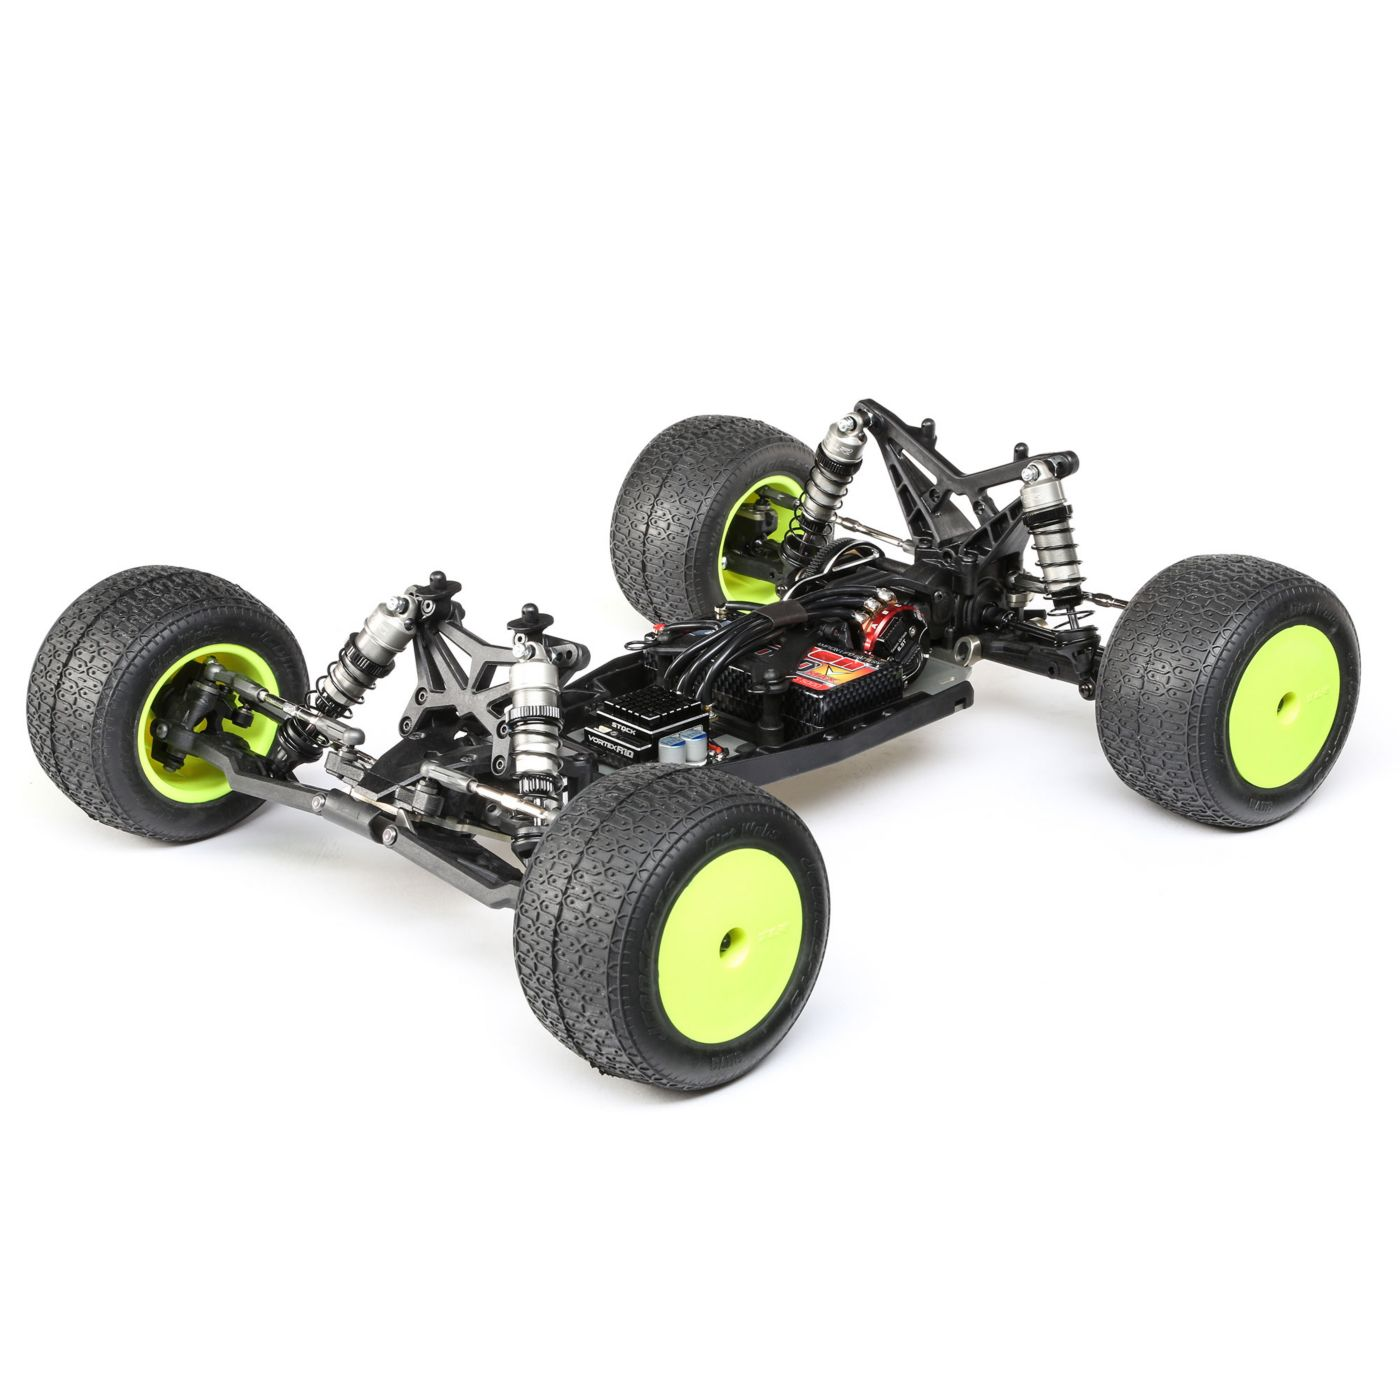 Team Losi Racing 22T 4 Stadium Truck - Chassis